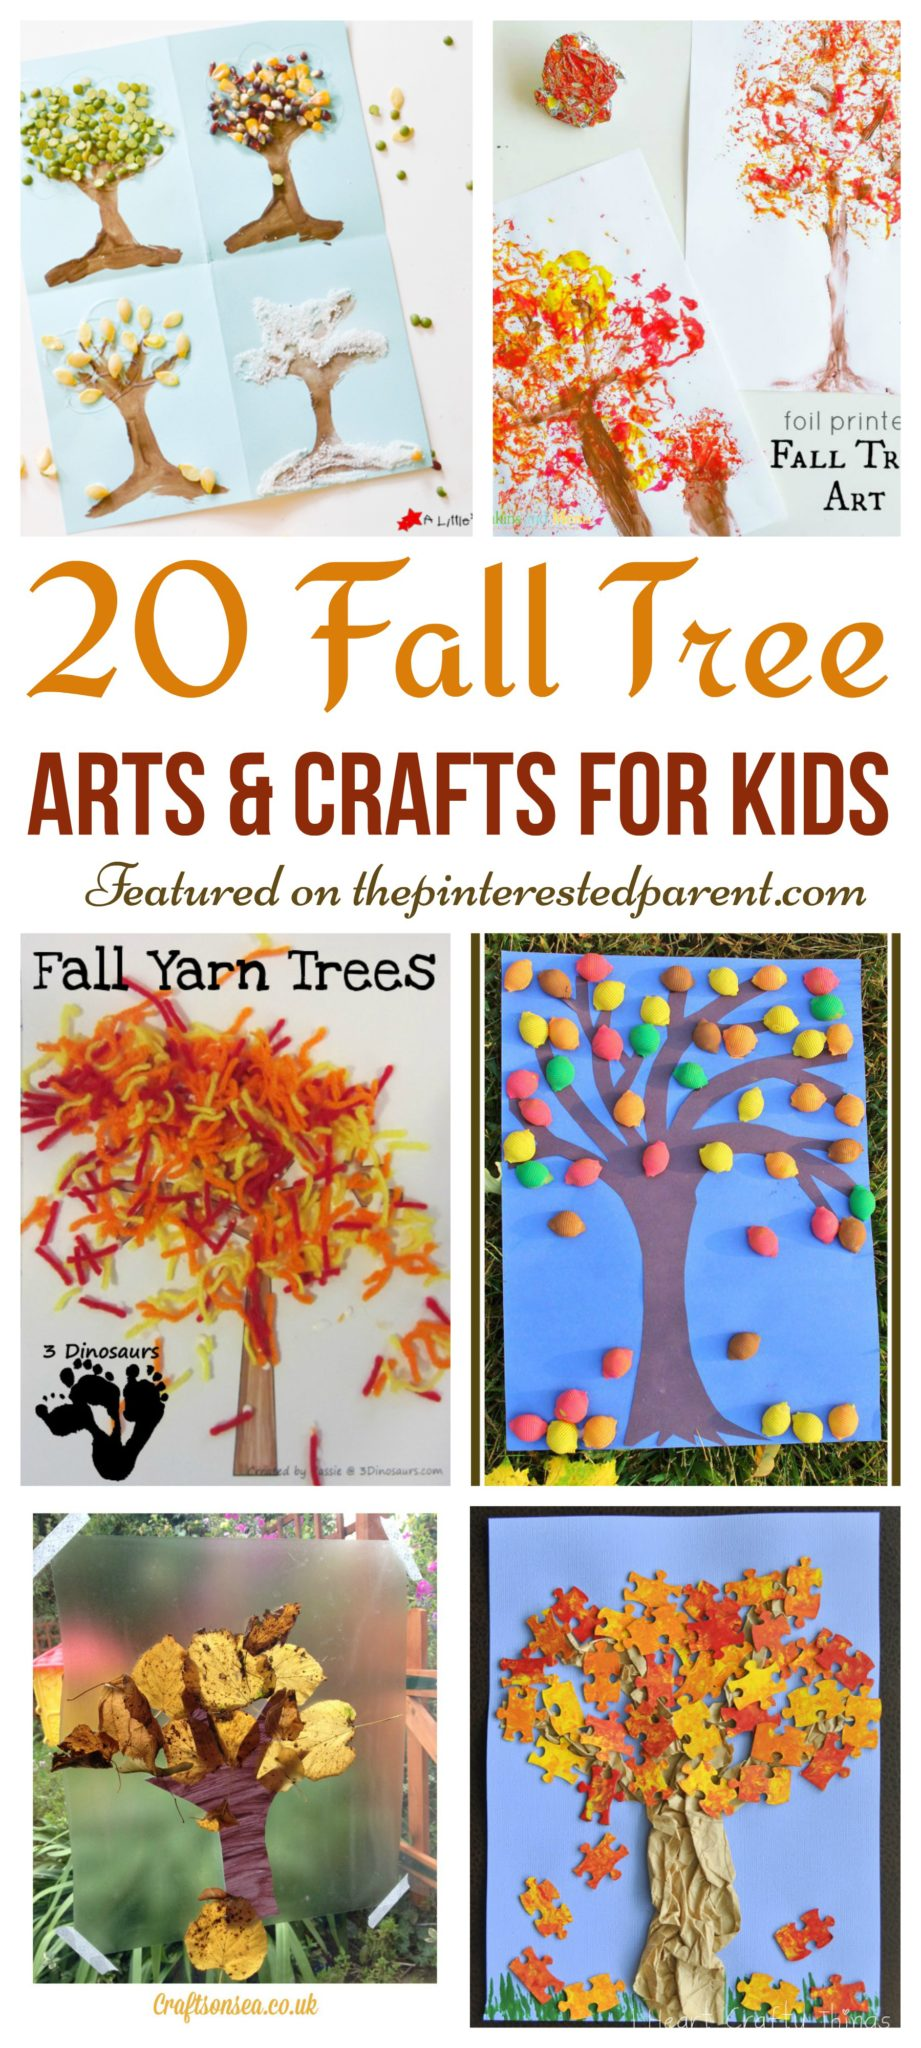 20 Fall Tree Arts Crafts Ideas For Kids The Pinterested